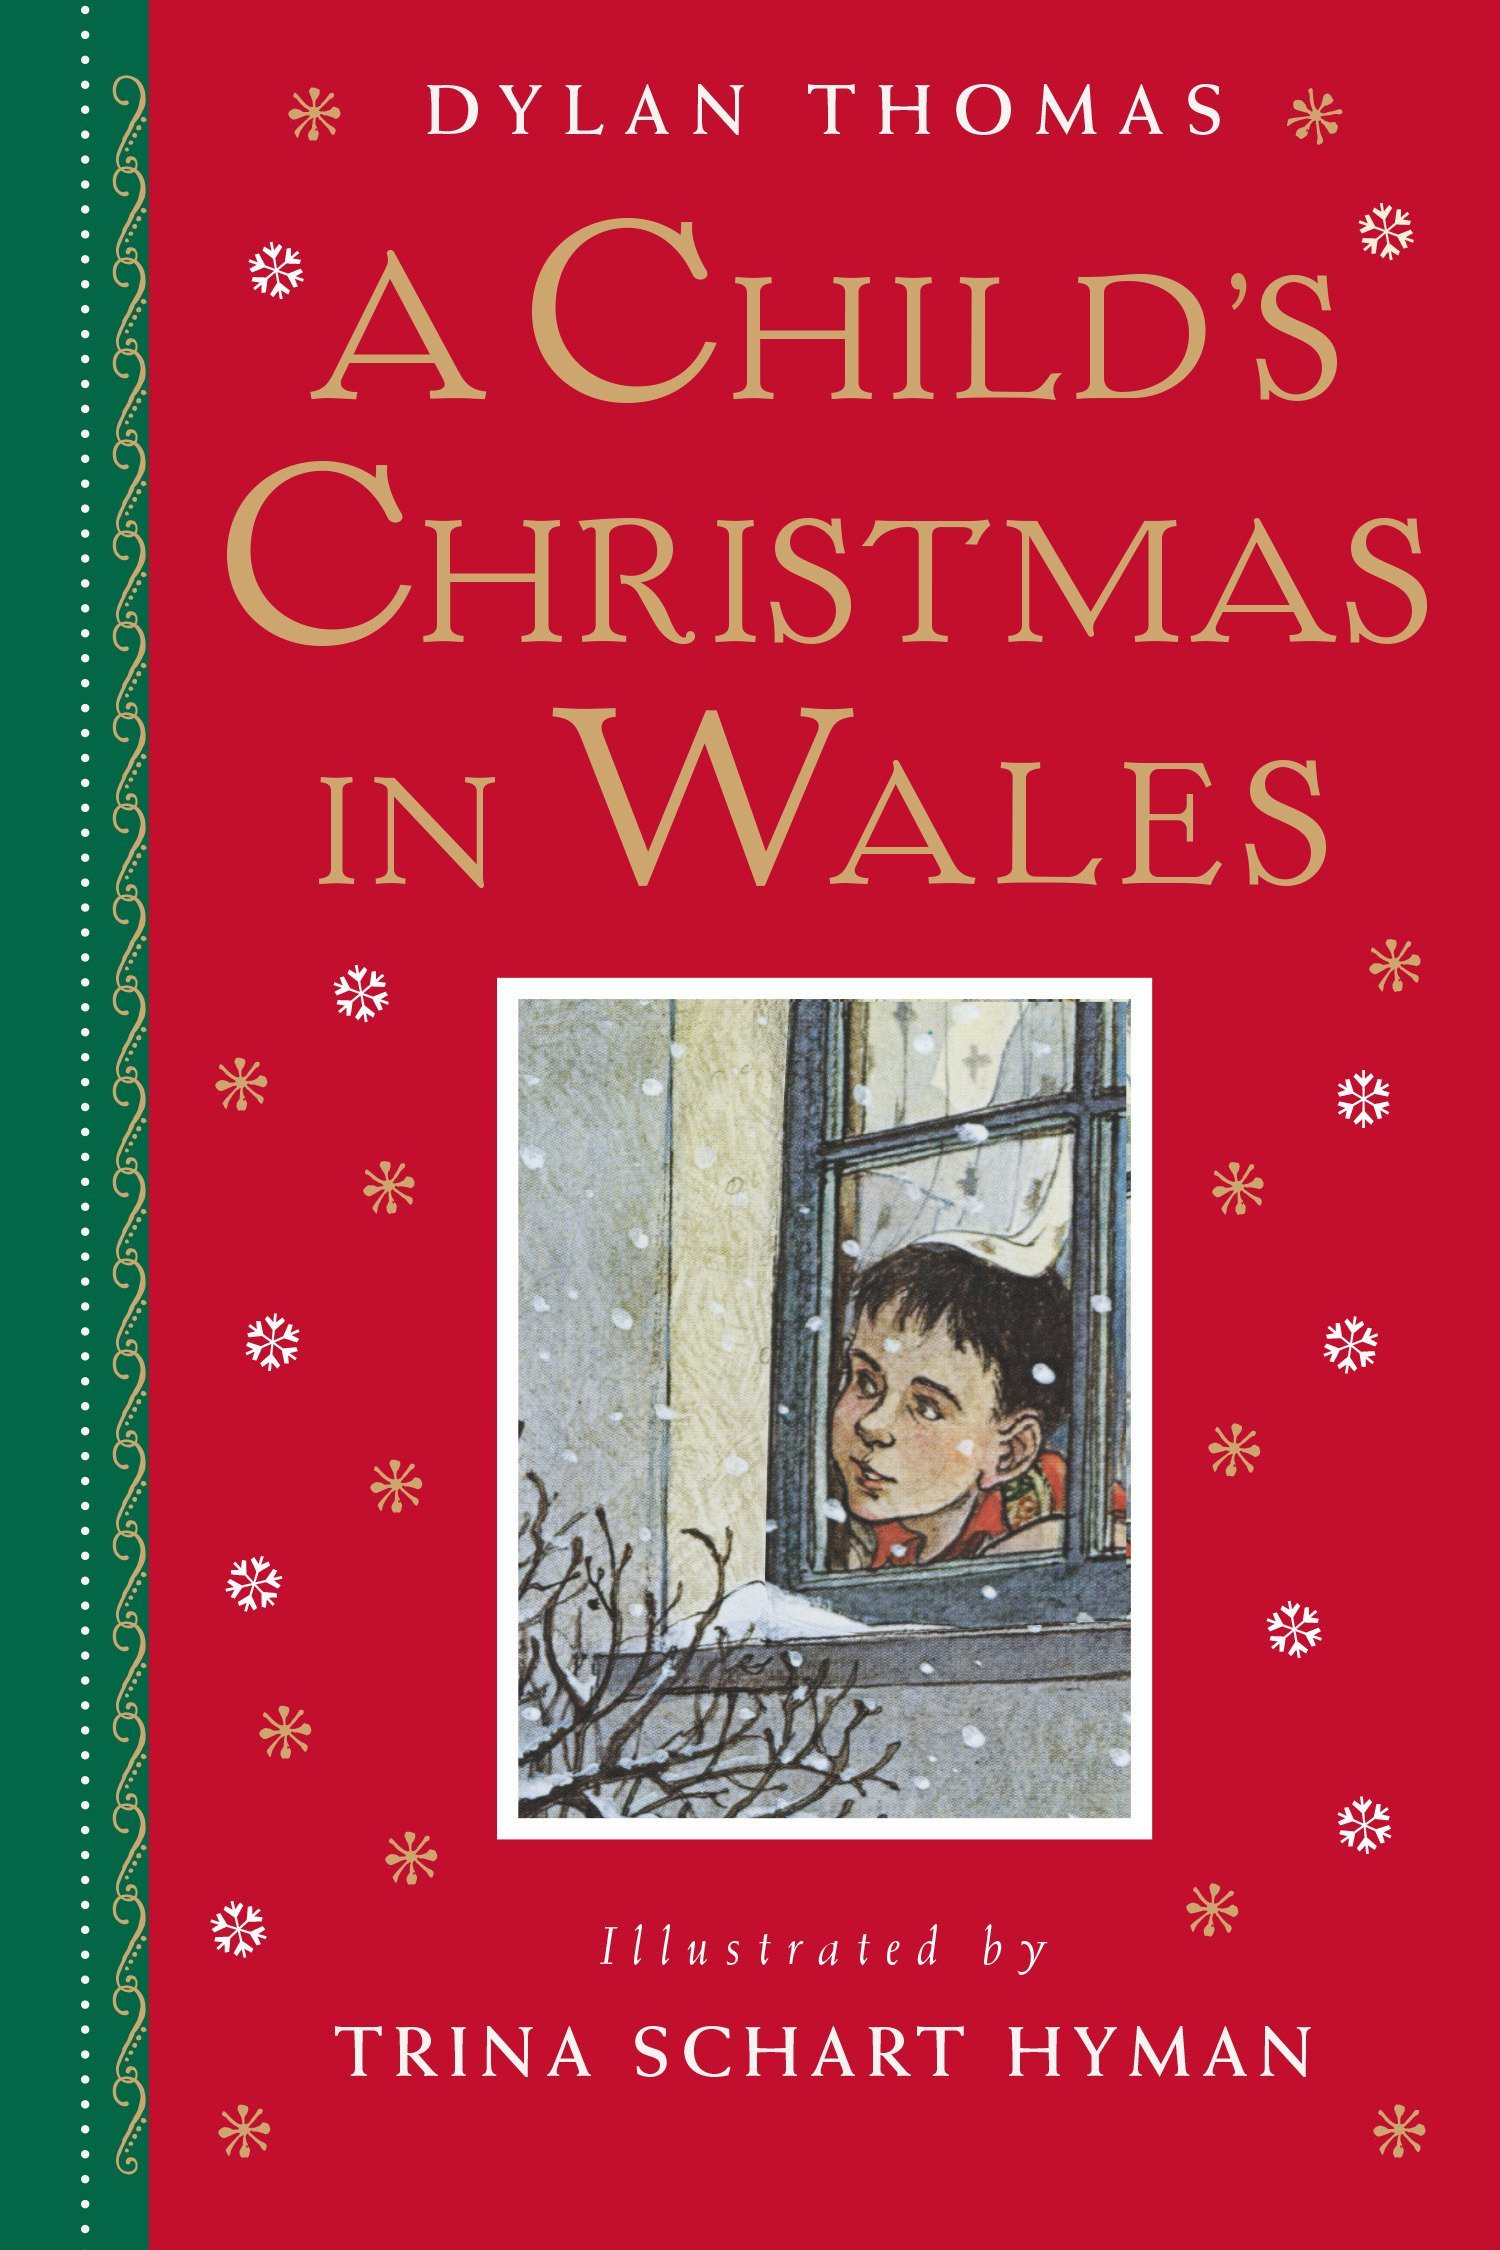 The Best Christmas Picture Books - A Child's Christmas in Wales.jpg